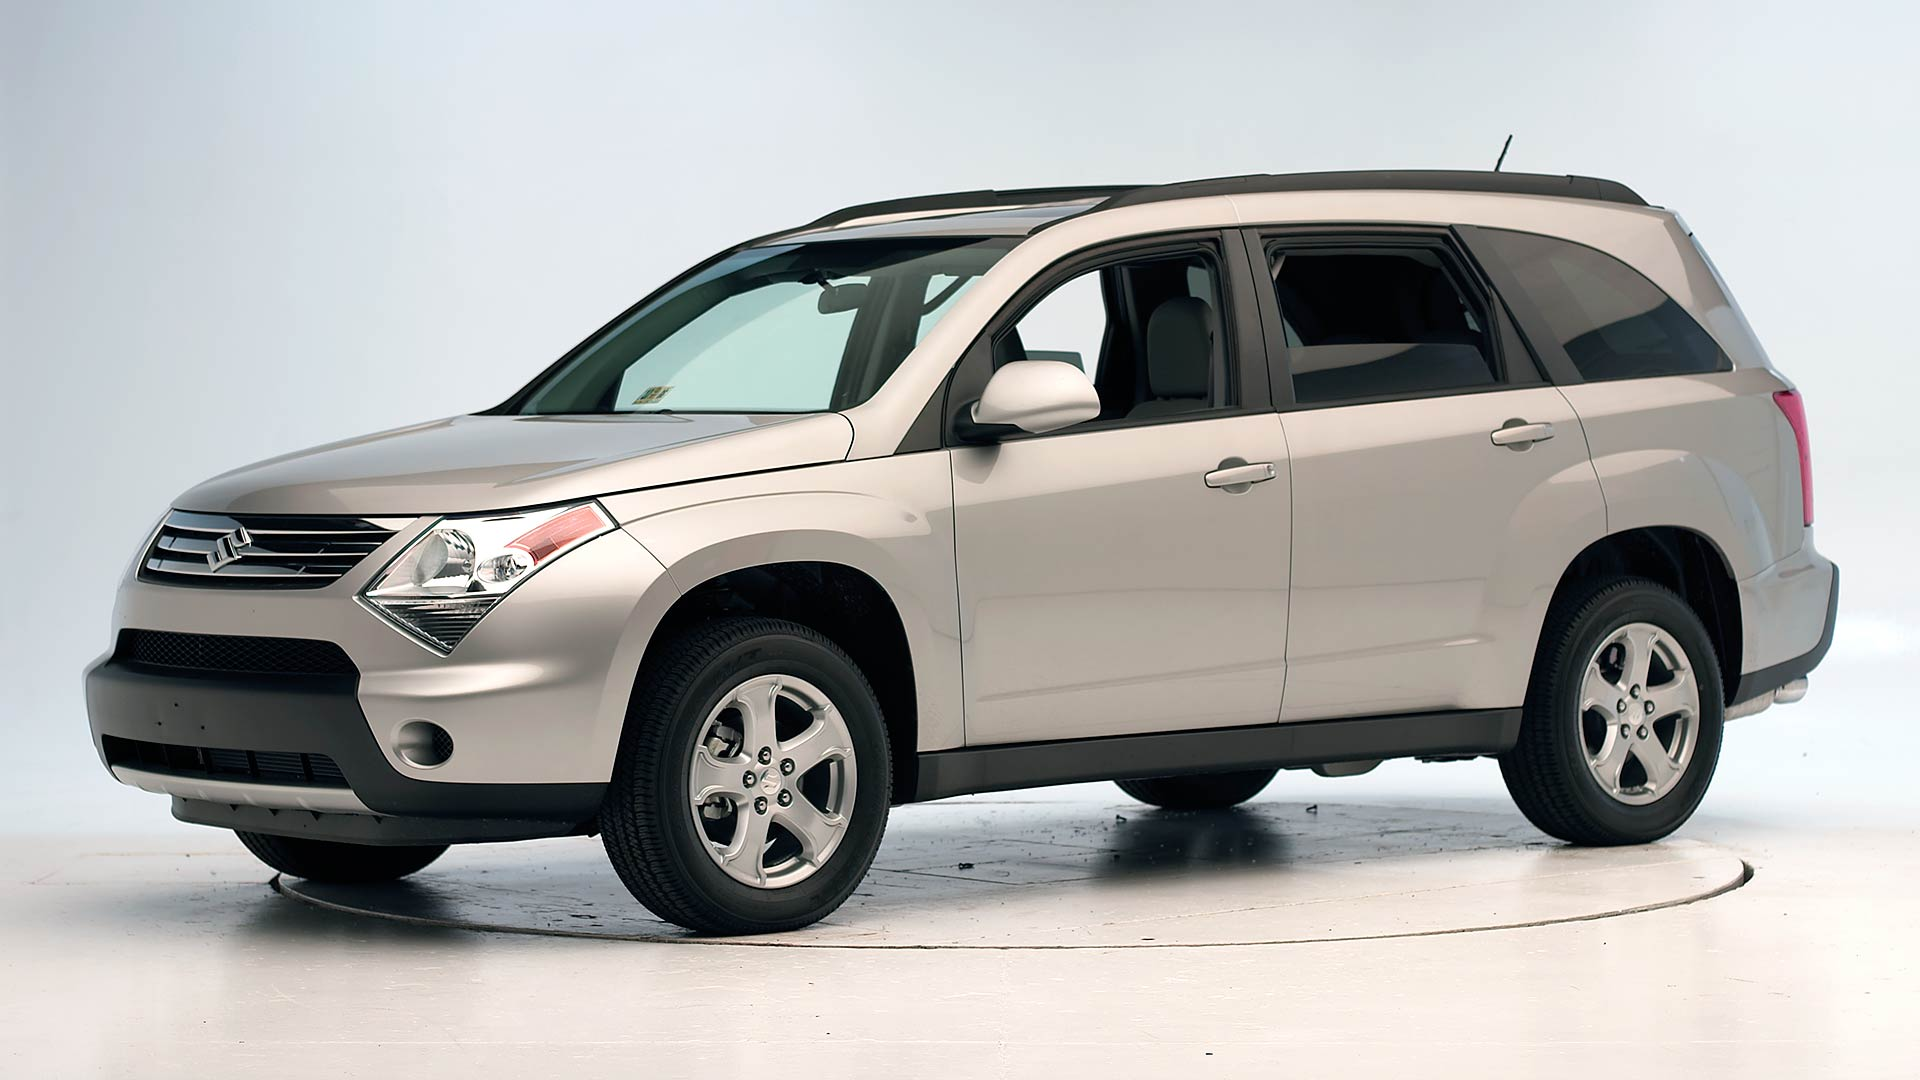 2008 Suzuki XL7 4-door SUV